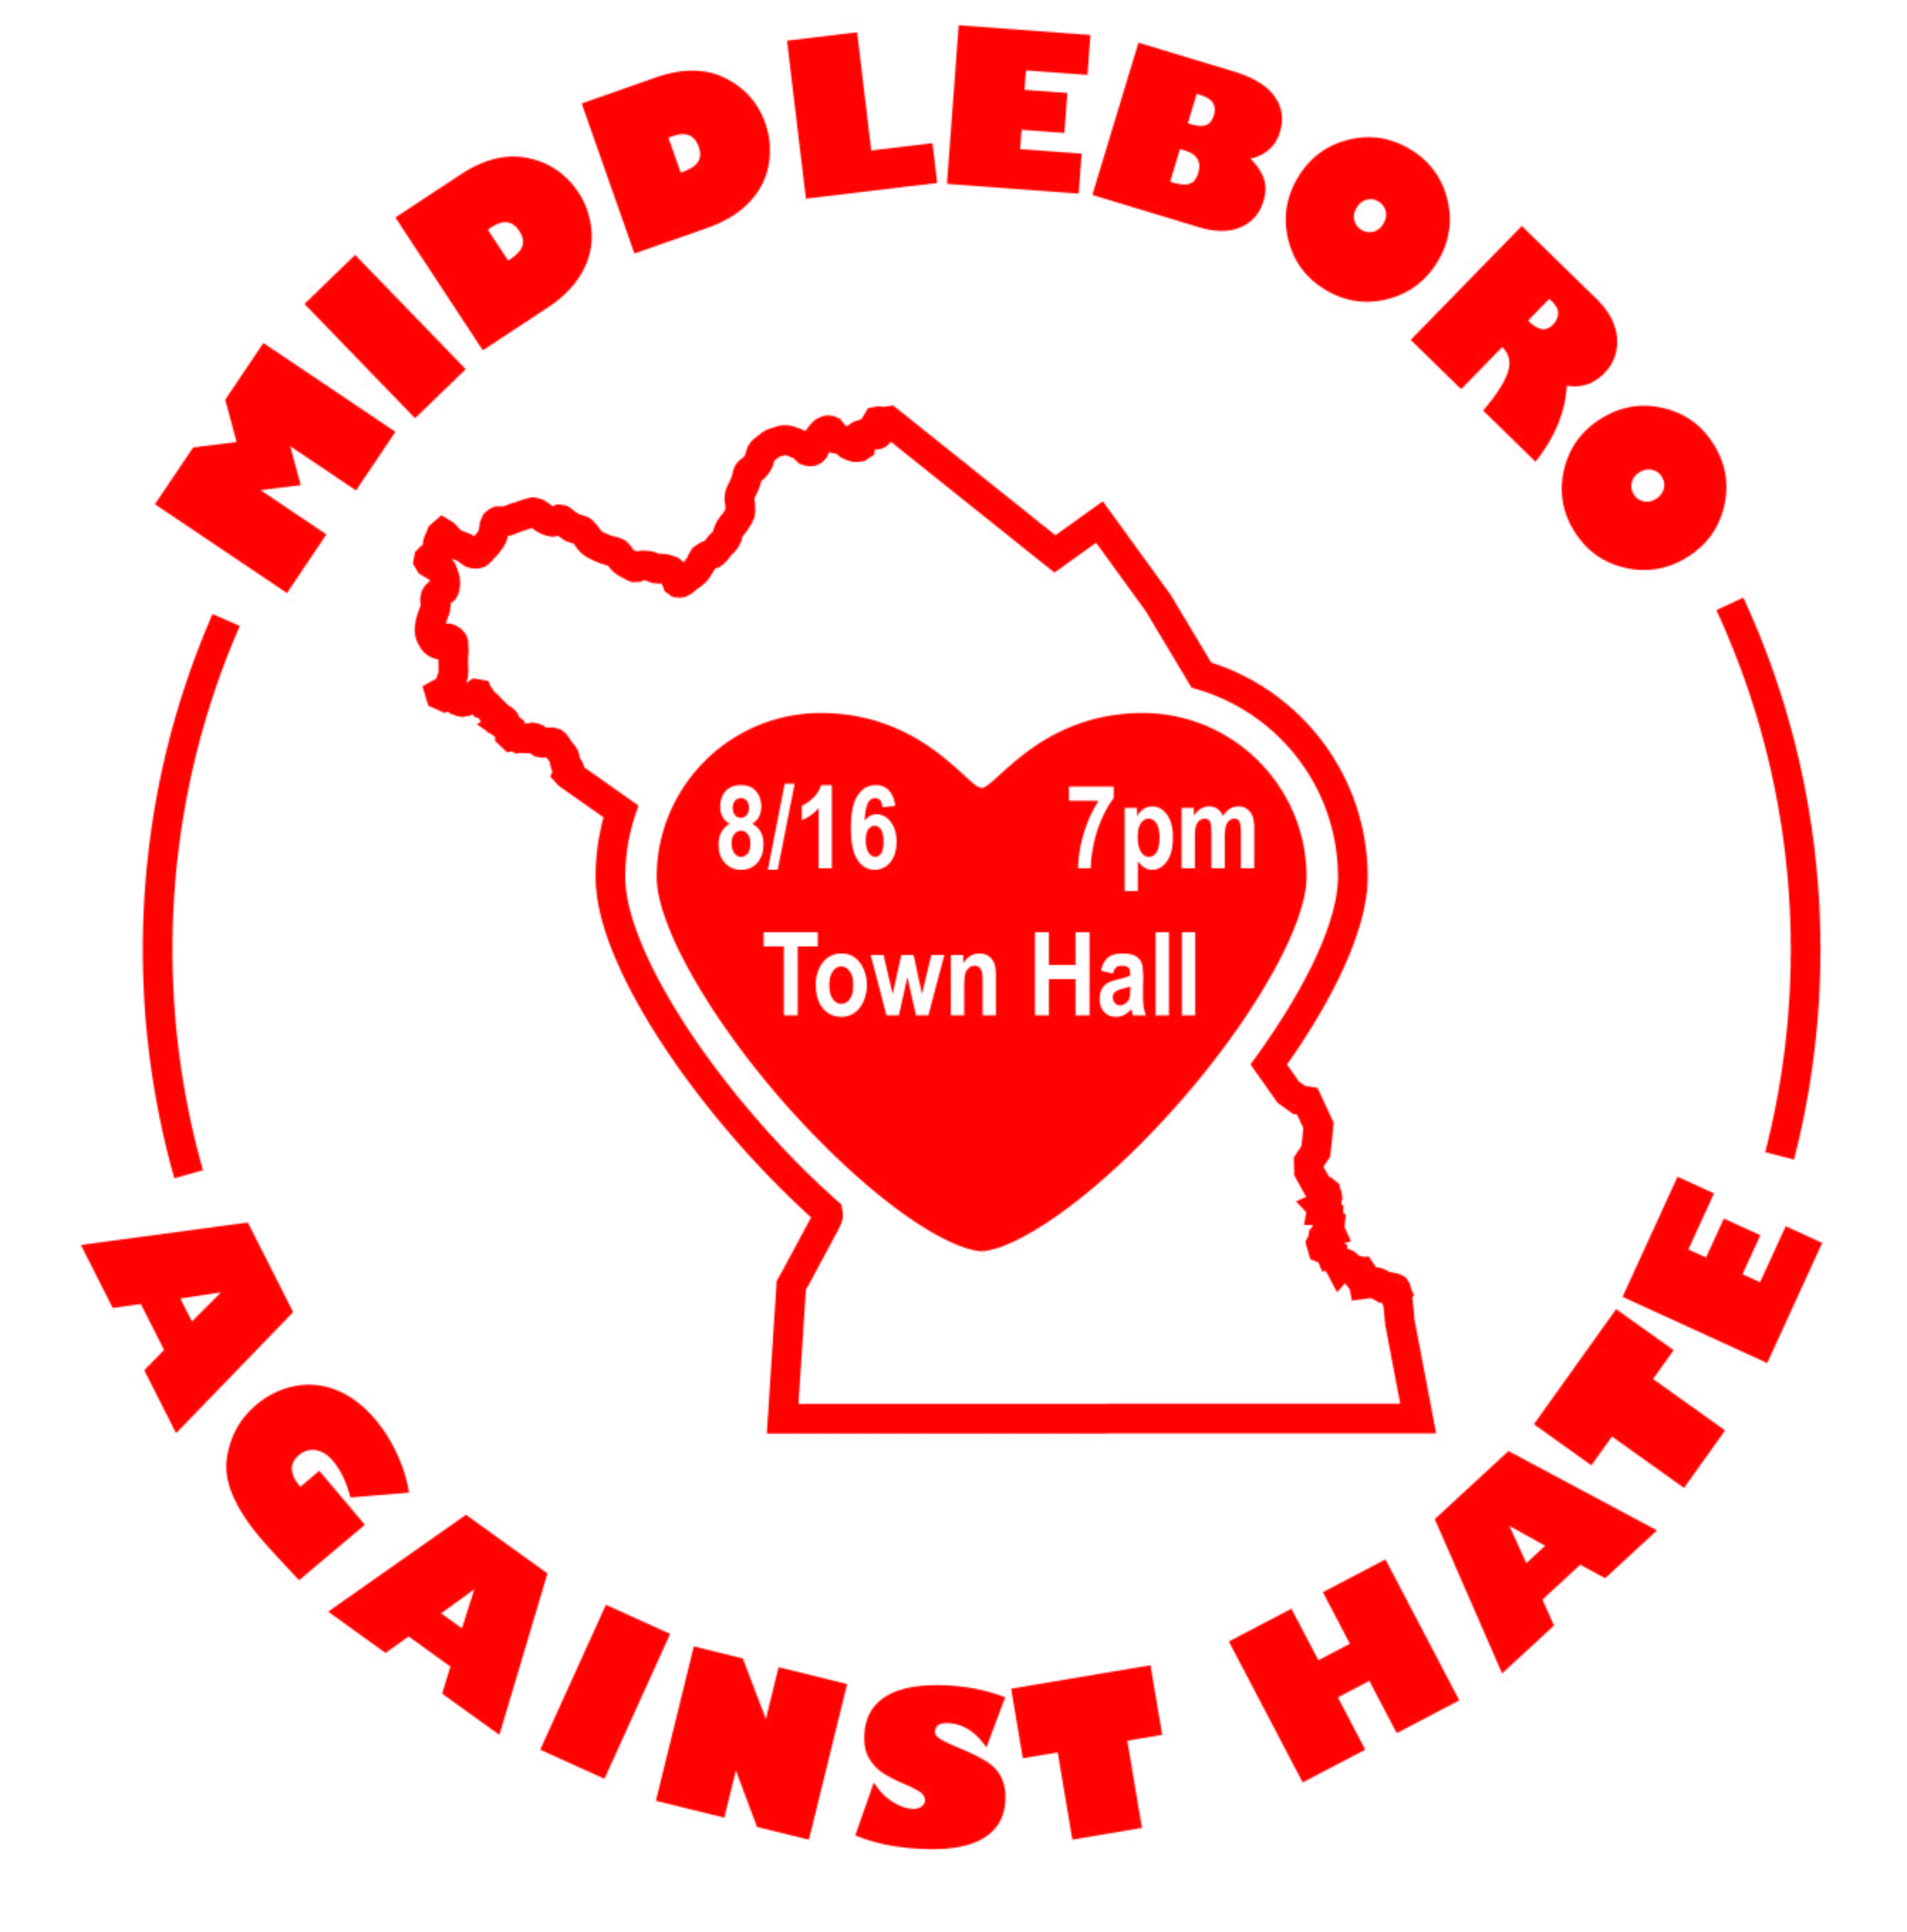 Middleboro Against Hate Rally, Wed 8/16/2017 at 7pm at Town Hall